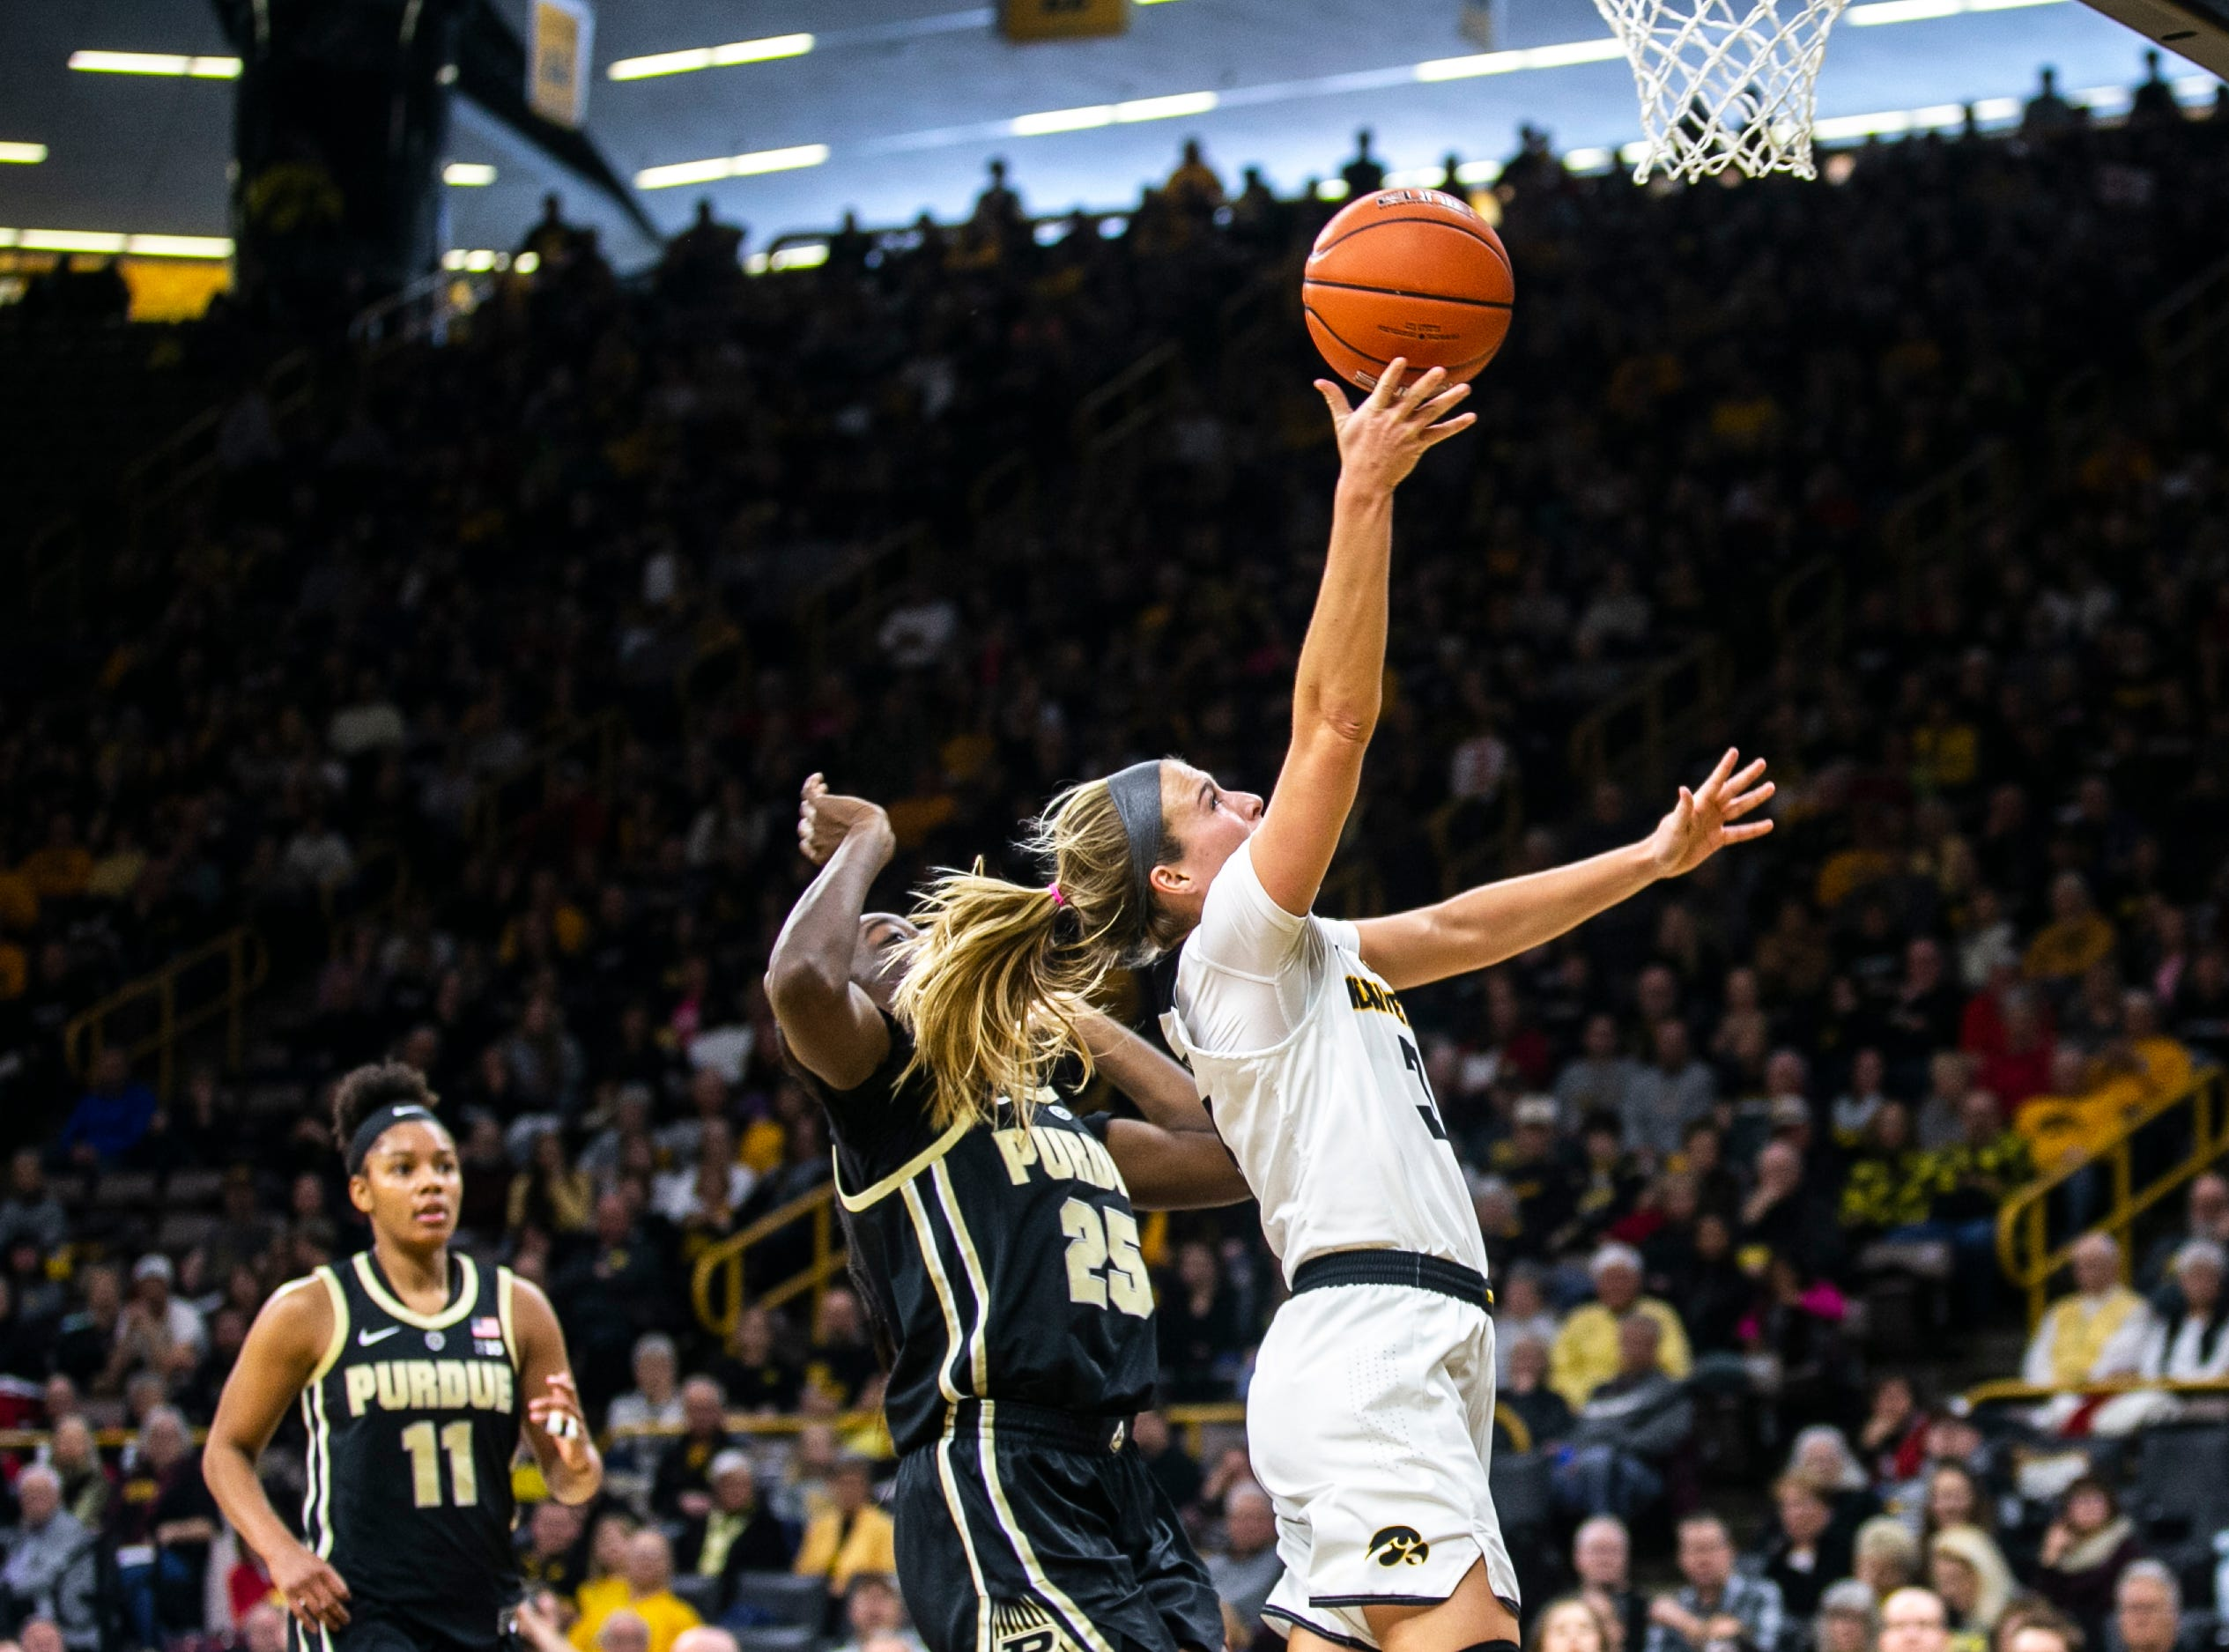 Iowa guard Makenzie Meyer (3) makes a layup during a NCAA Big Ten Conference women's basketball game on Sunday, Jan. 27, 2019, at Carver-Hawkeye Arena in Iowa City, Iowa.